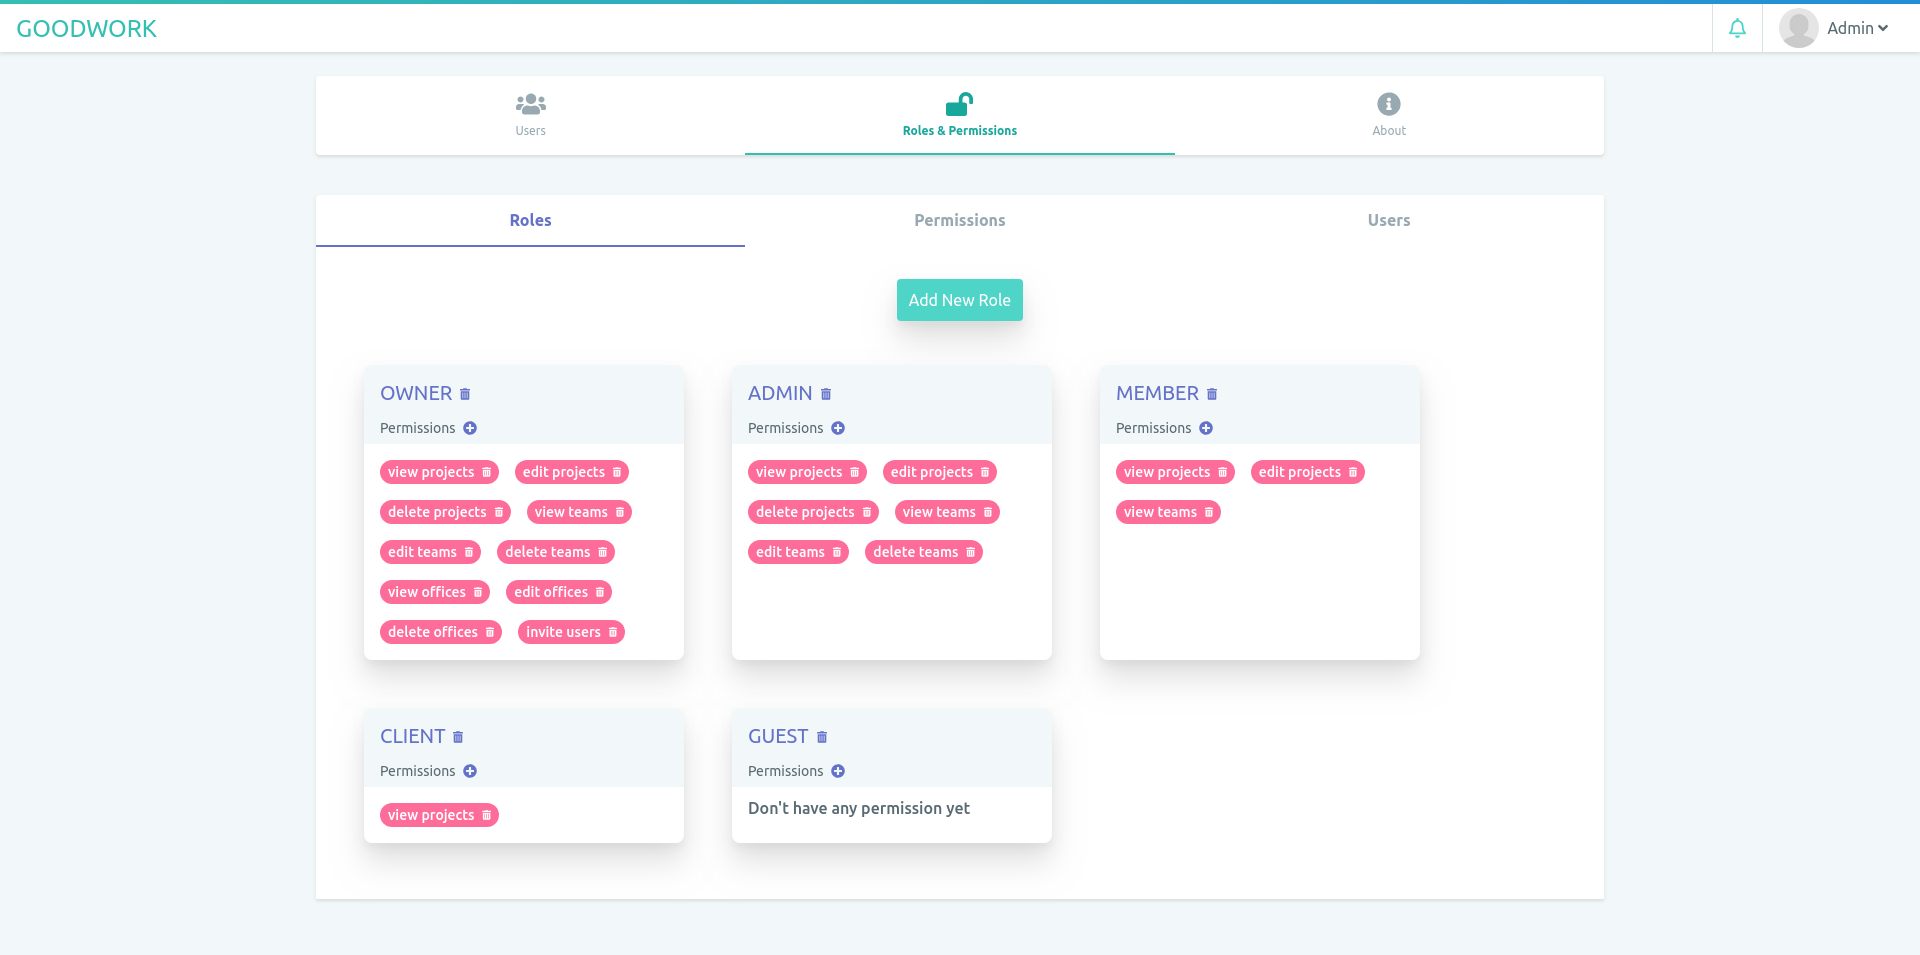 Github Iluminar Goodwork Self Hosted Project Management